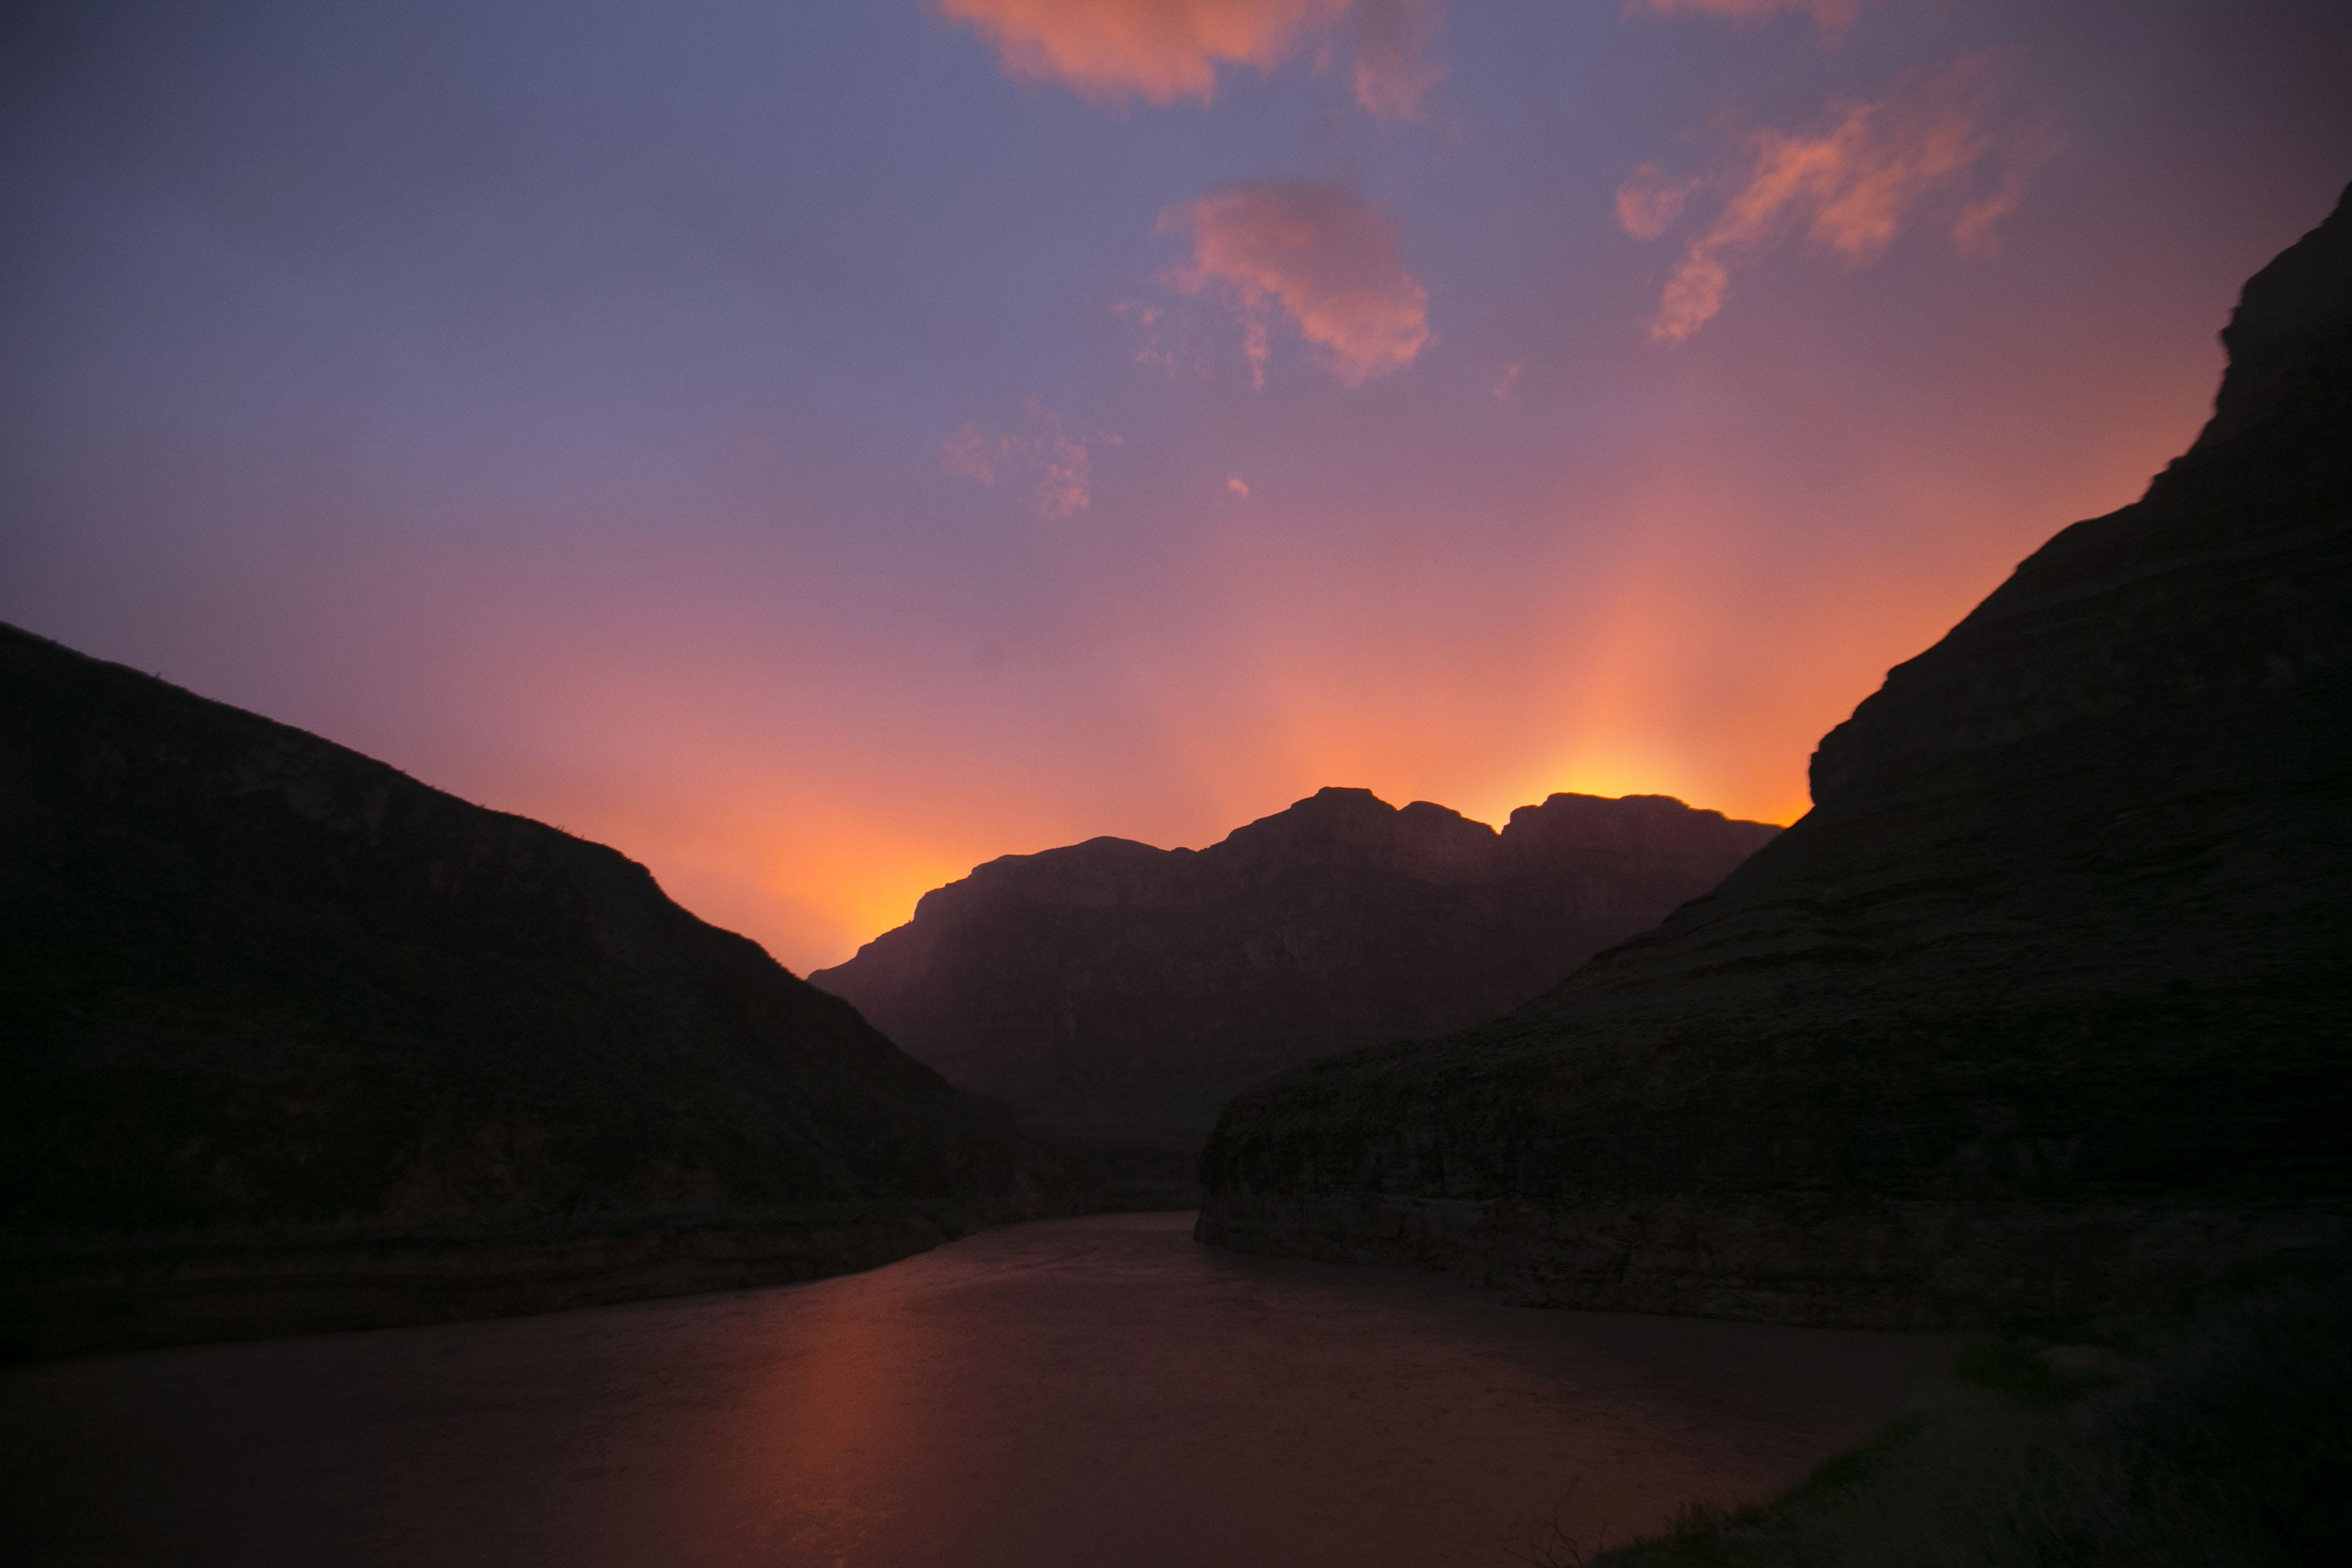 The sun sets over the Colorado River in the western part of Grand Canyon National Park.